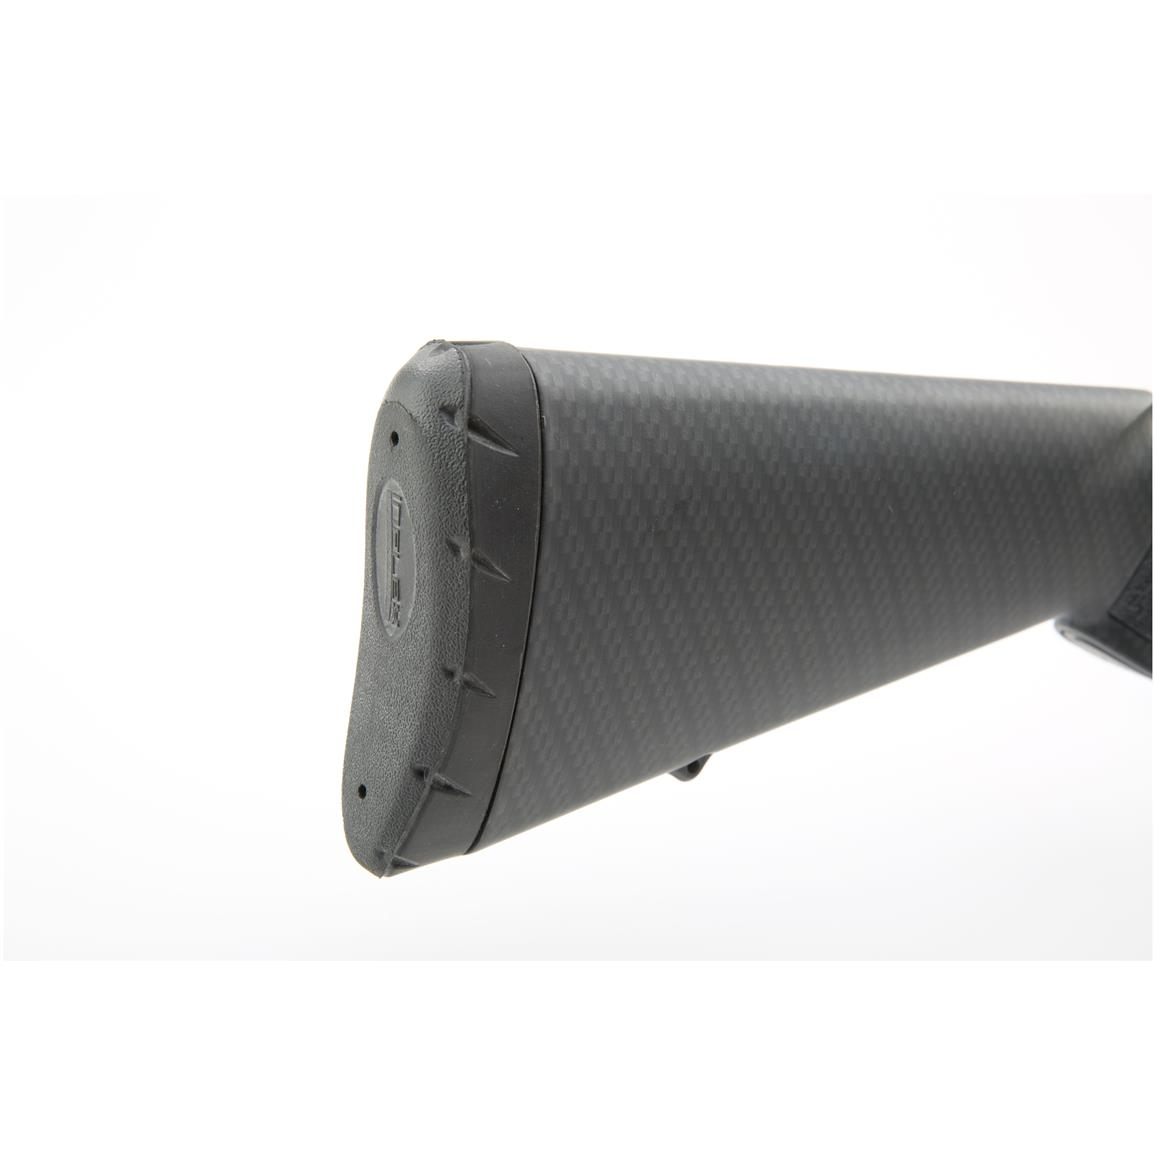 Textured gripping surface on stock and forend